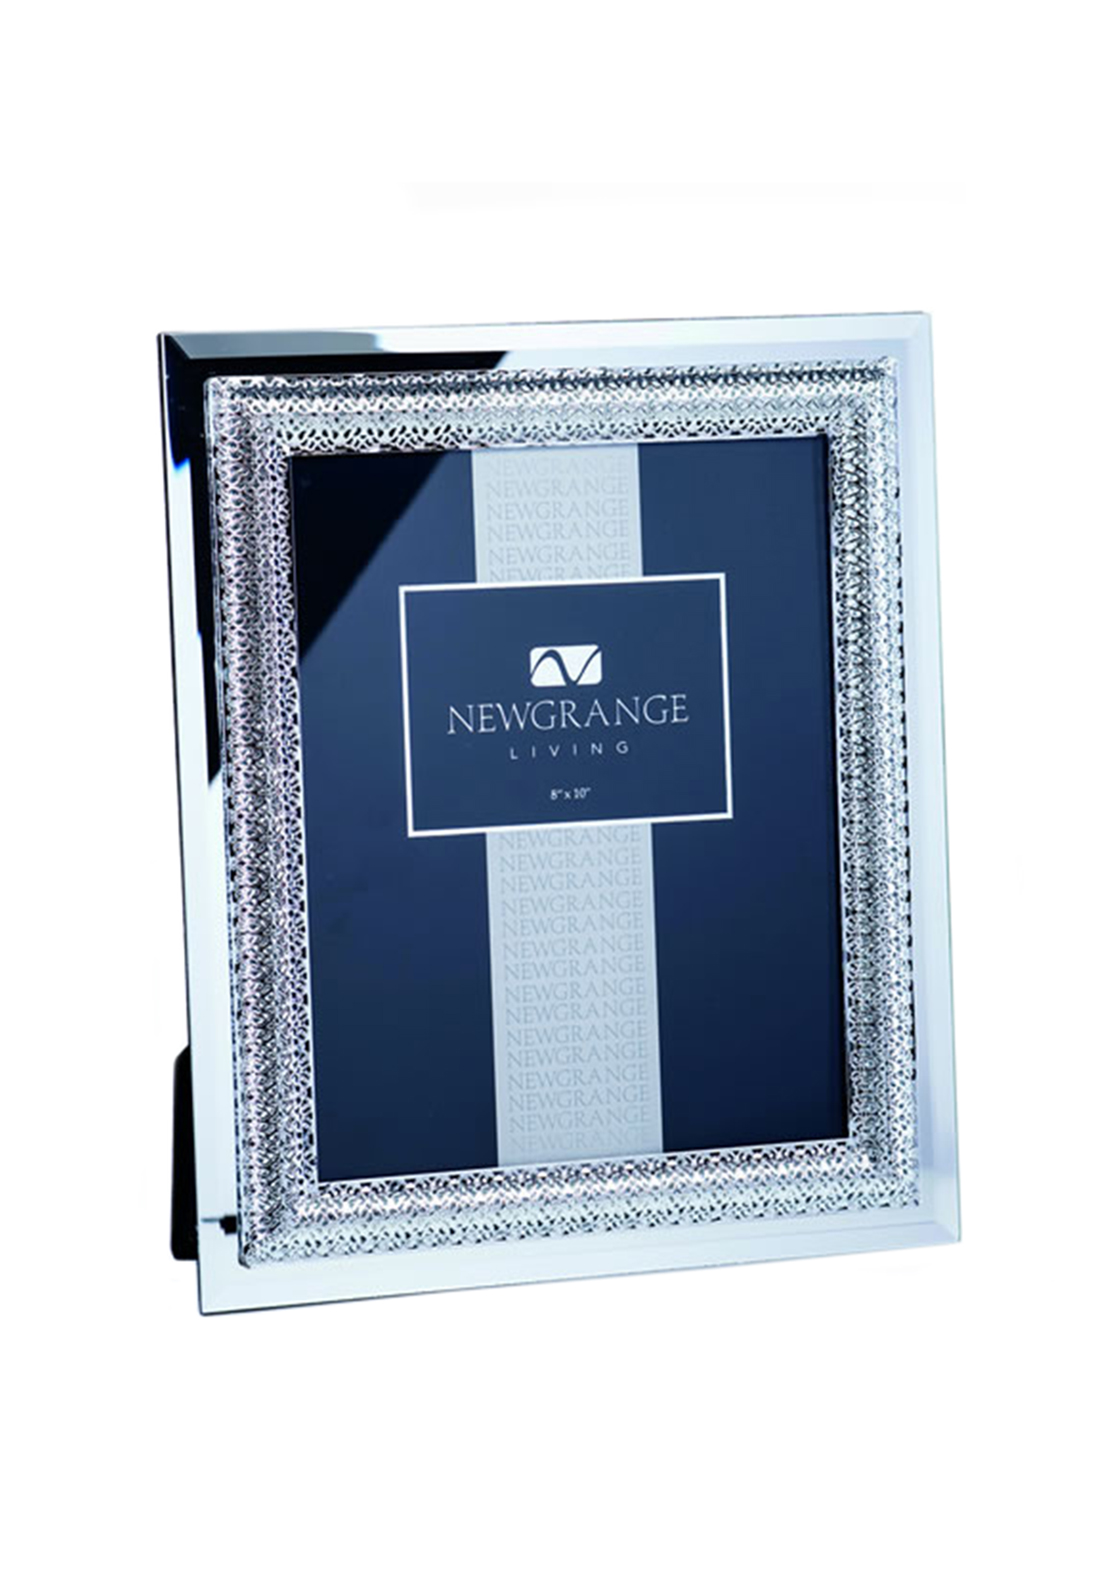 "Newgrange Living Lattice Photo Frame 8"" x 10"", Silver"